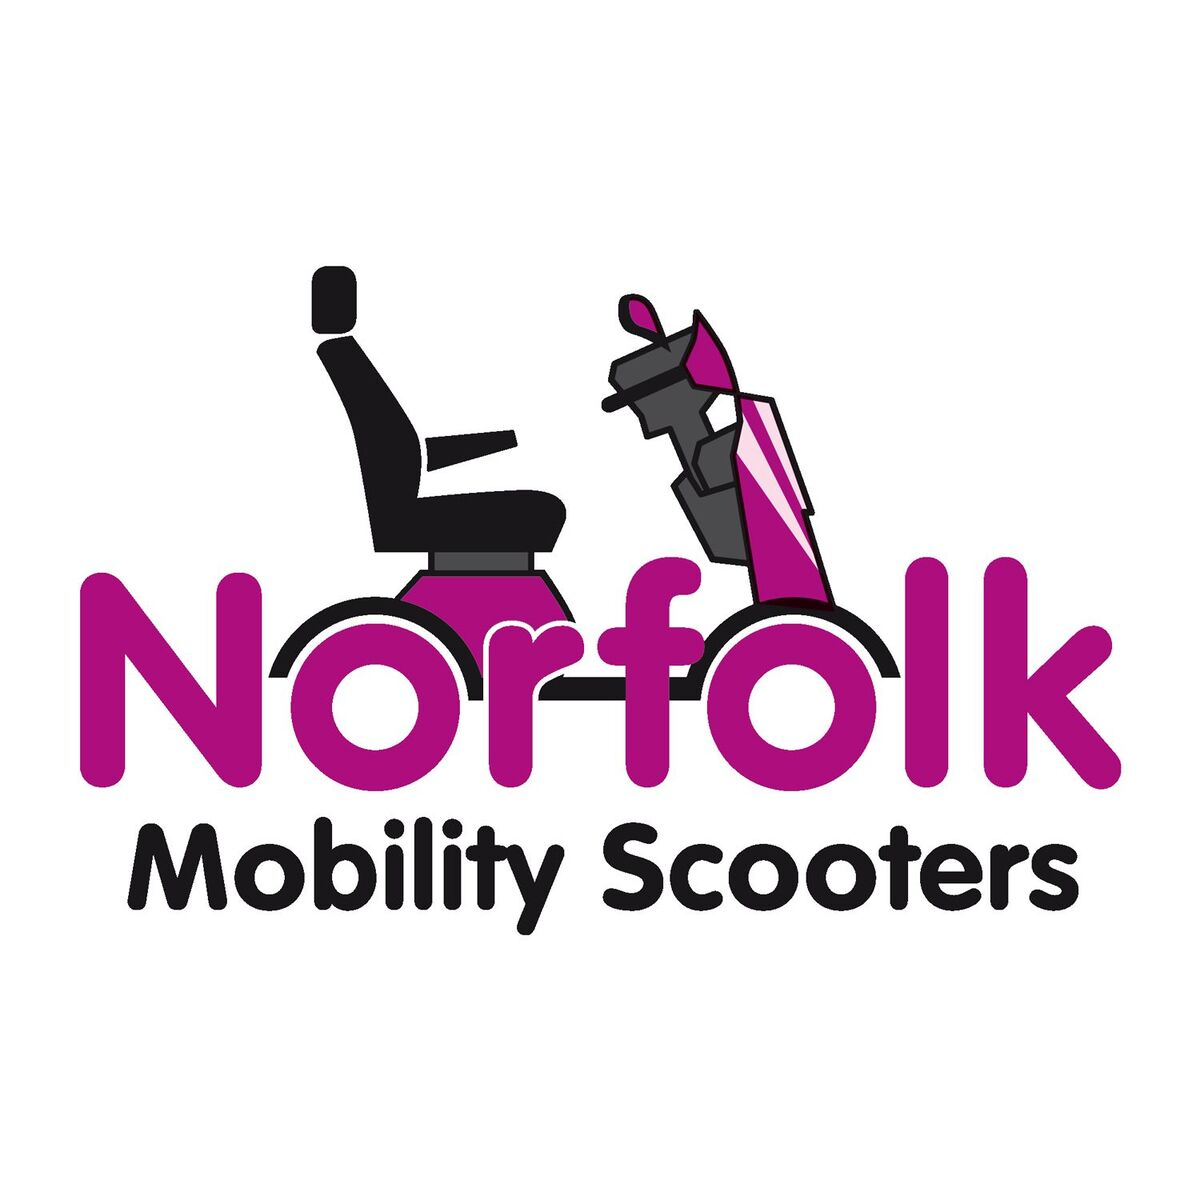 Norfolk Mobility Scooters